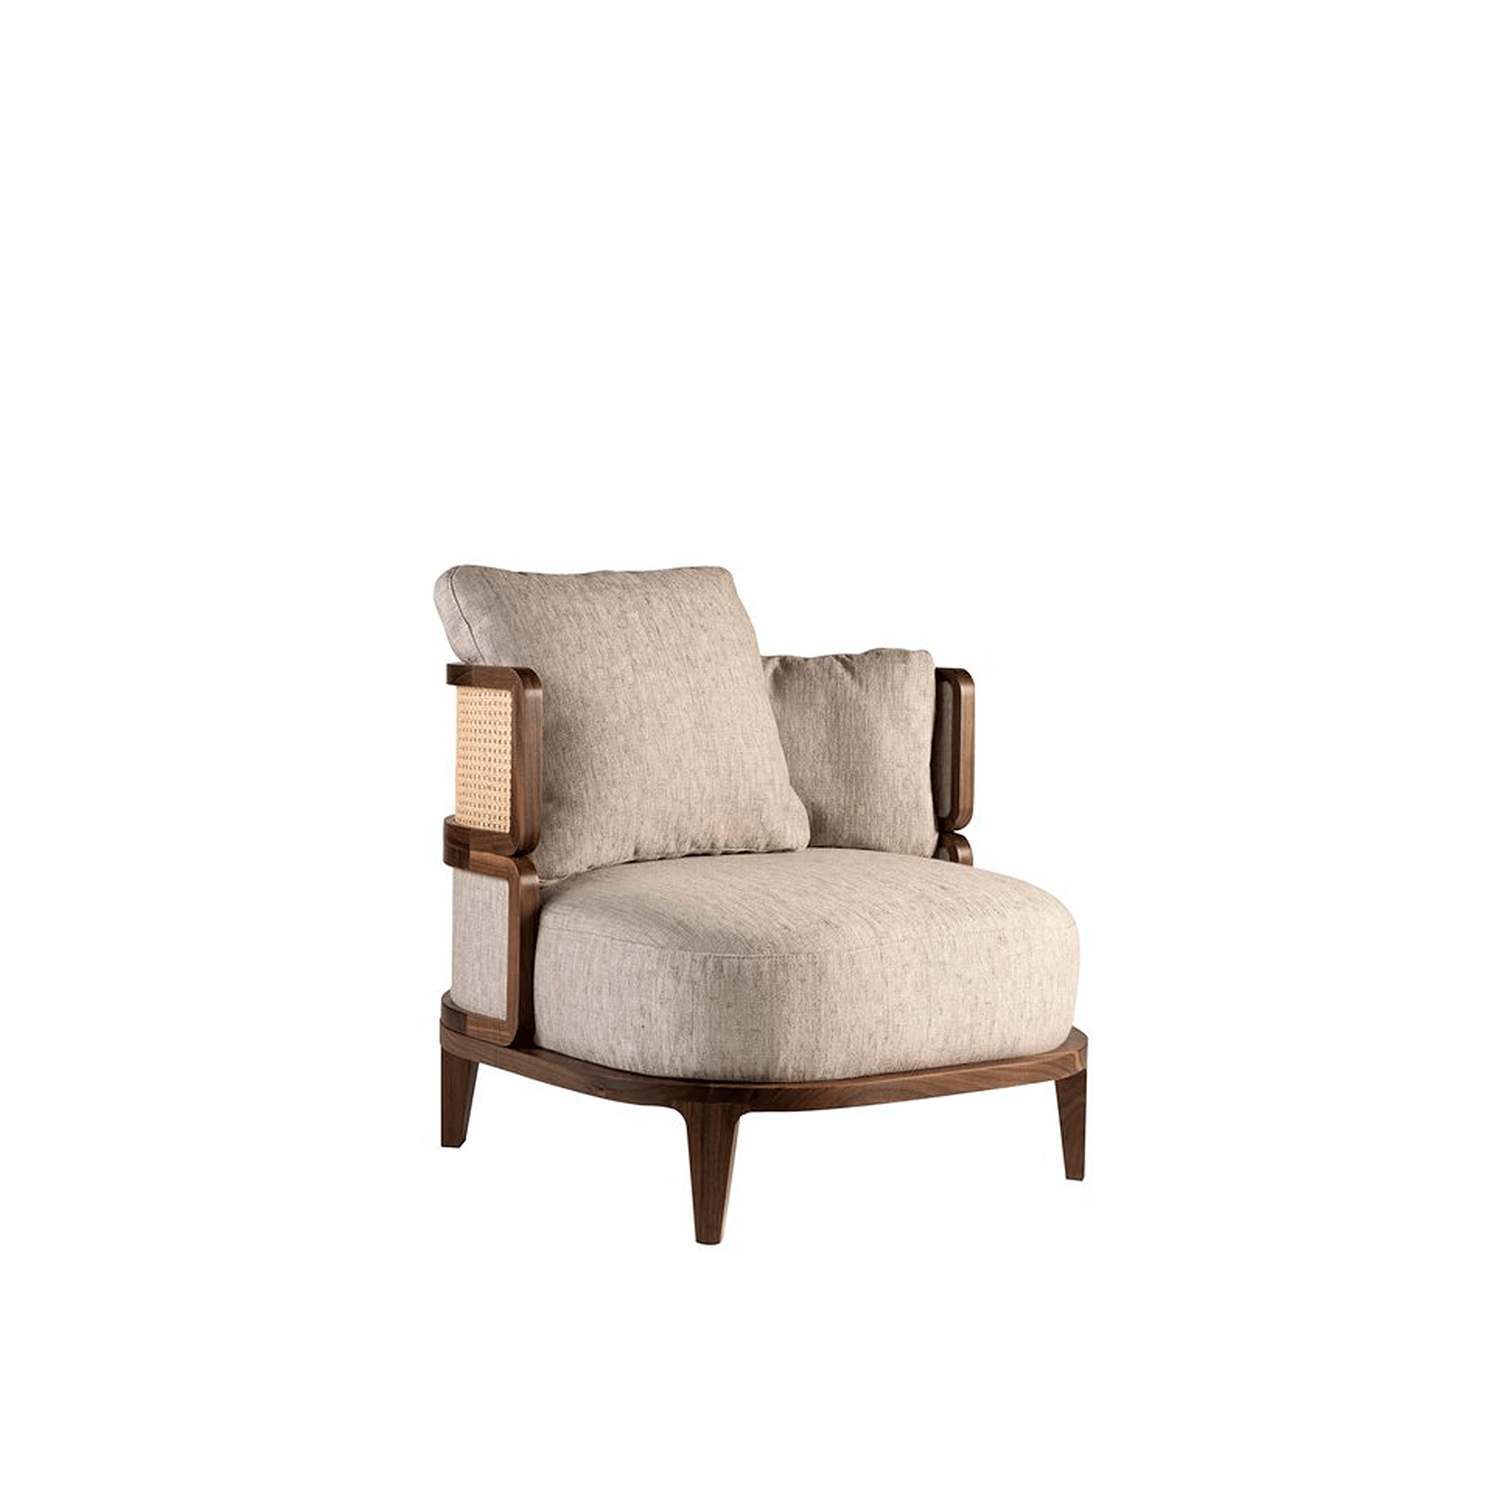 Promenade Lounge Chair - This lounge chair is a masterpiece of elegance and timeless allure. Ideal to be displayed in the middle of a room, thanks to its elaborate and visible wooden structure, this piece boasts a Canaletto walnut frame that envelopes the comfortable cushions in dawn and polyester. The back is further adorned with panels in the same upholstery of the cushions and with Viennese straw. | Matter of Stuff